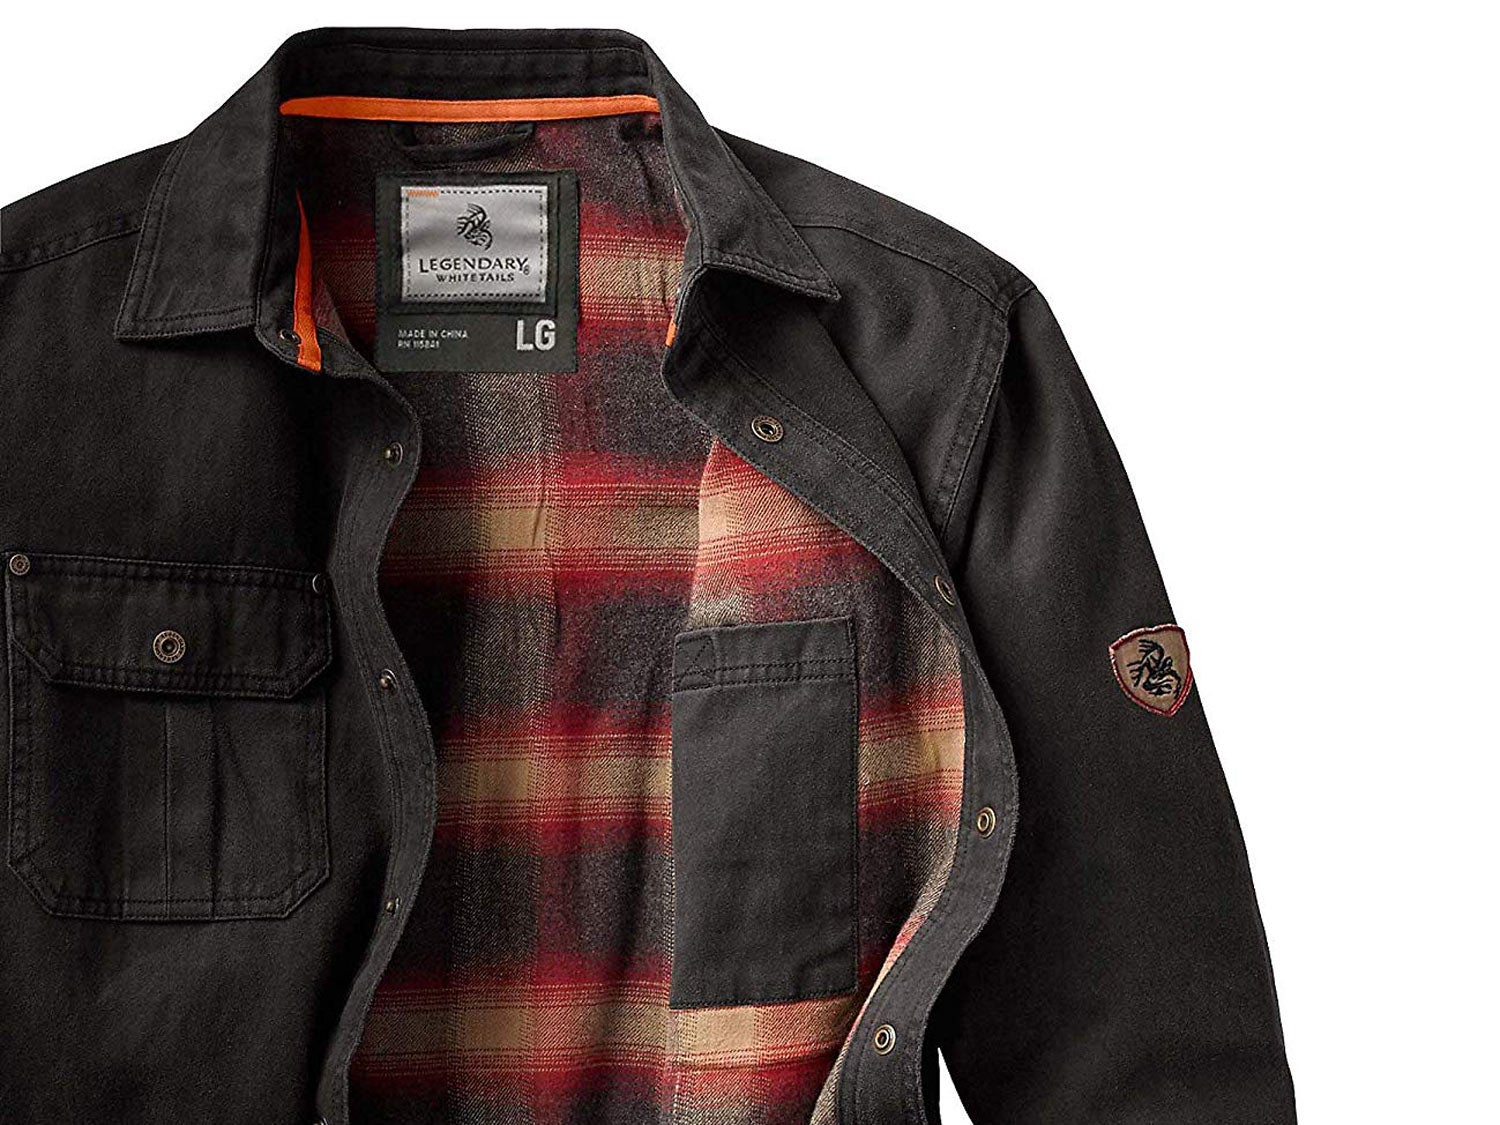 Three Tips for Finding the Perfect Flannel Jacket